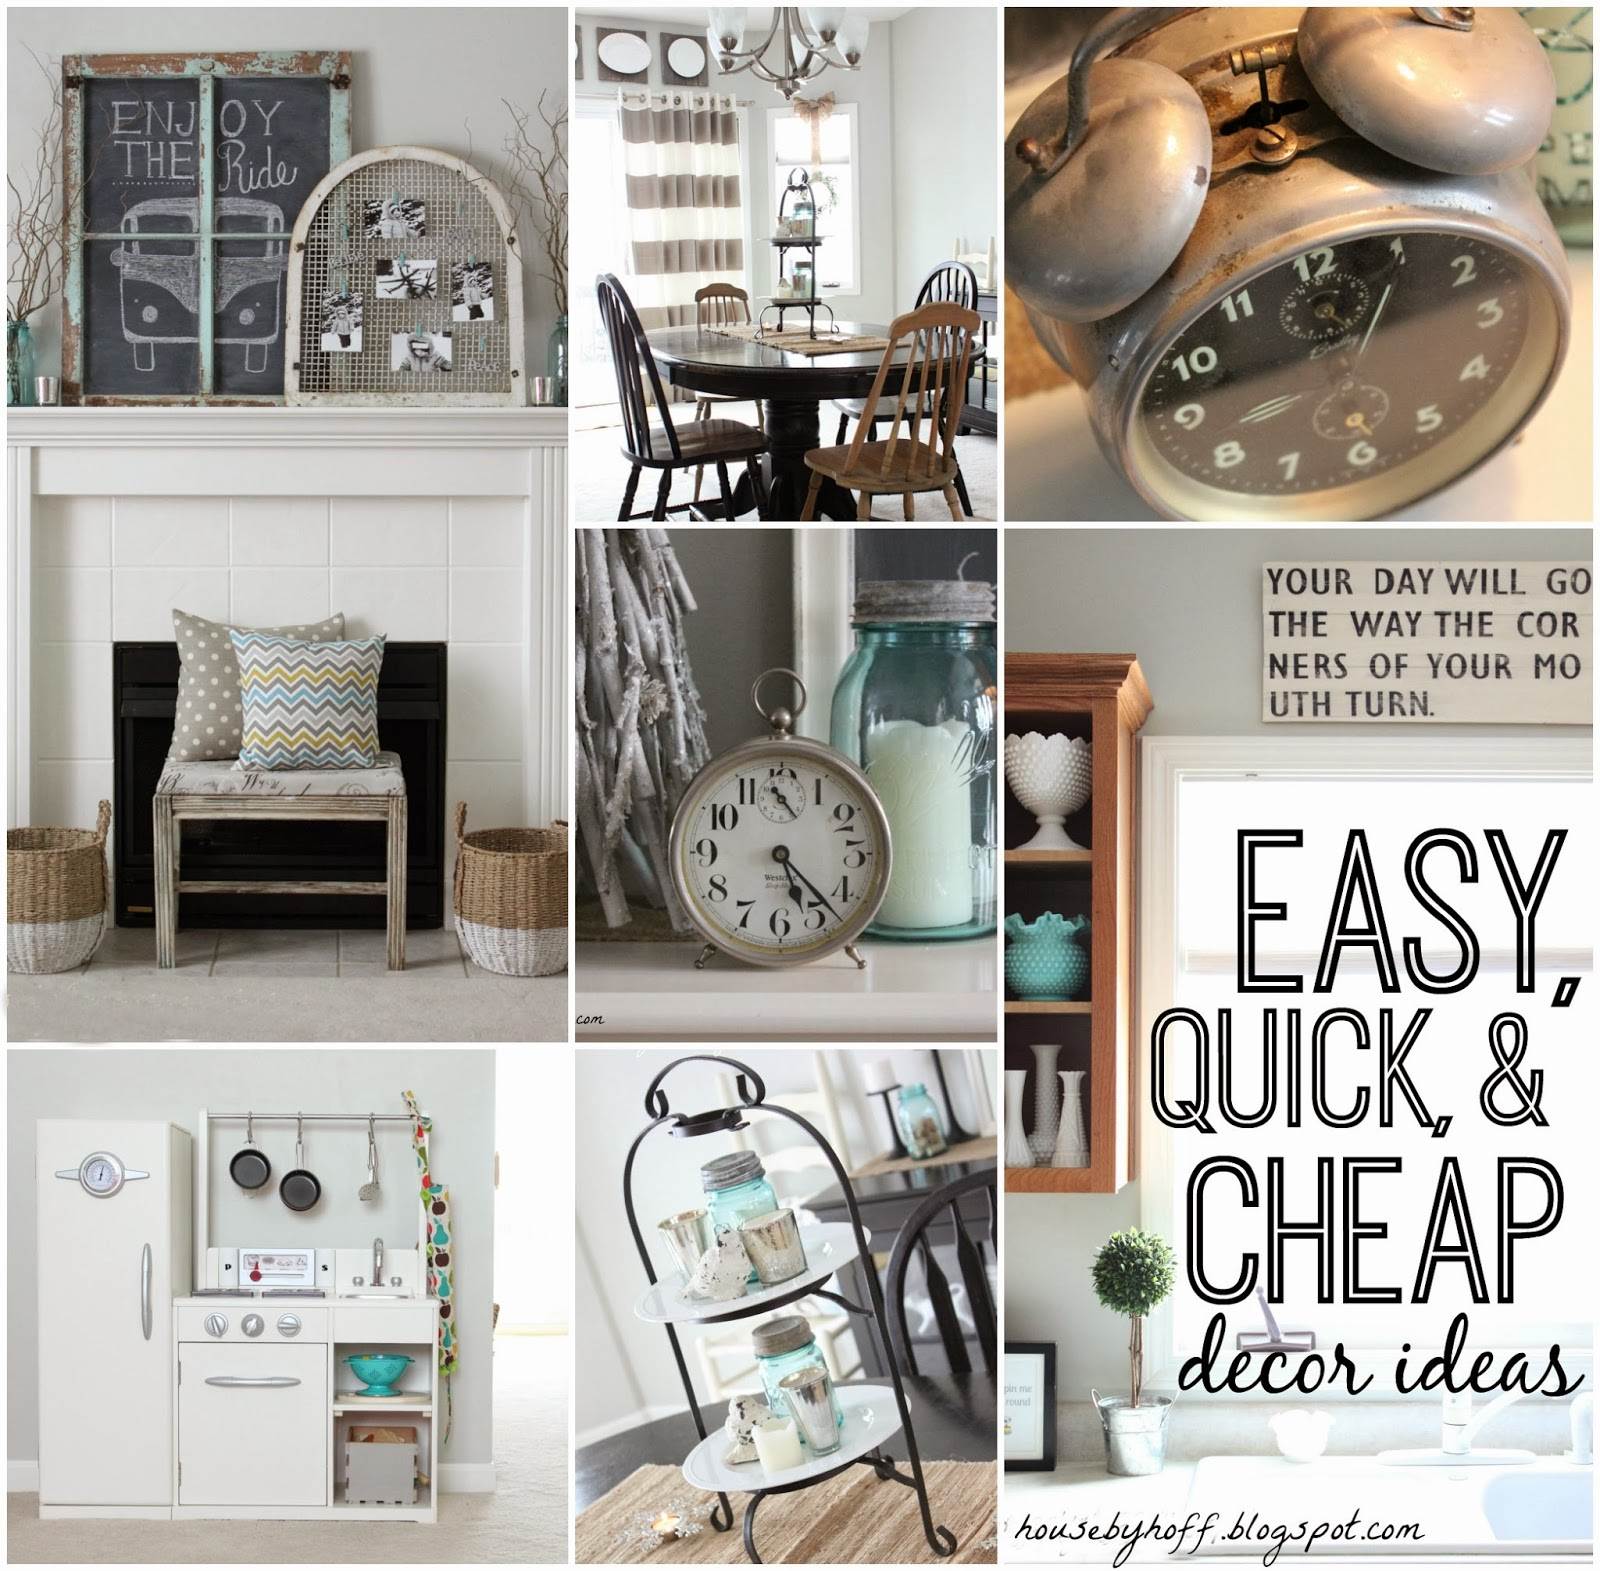 Updated home tour january decorating recap house by hoff for Cheap decorative items